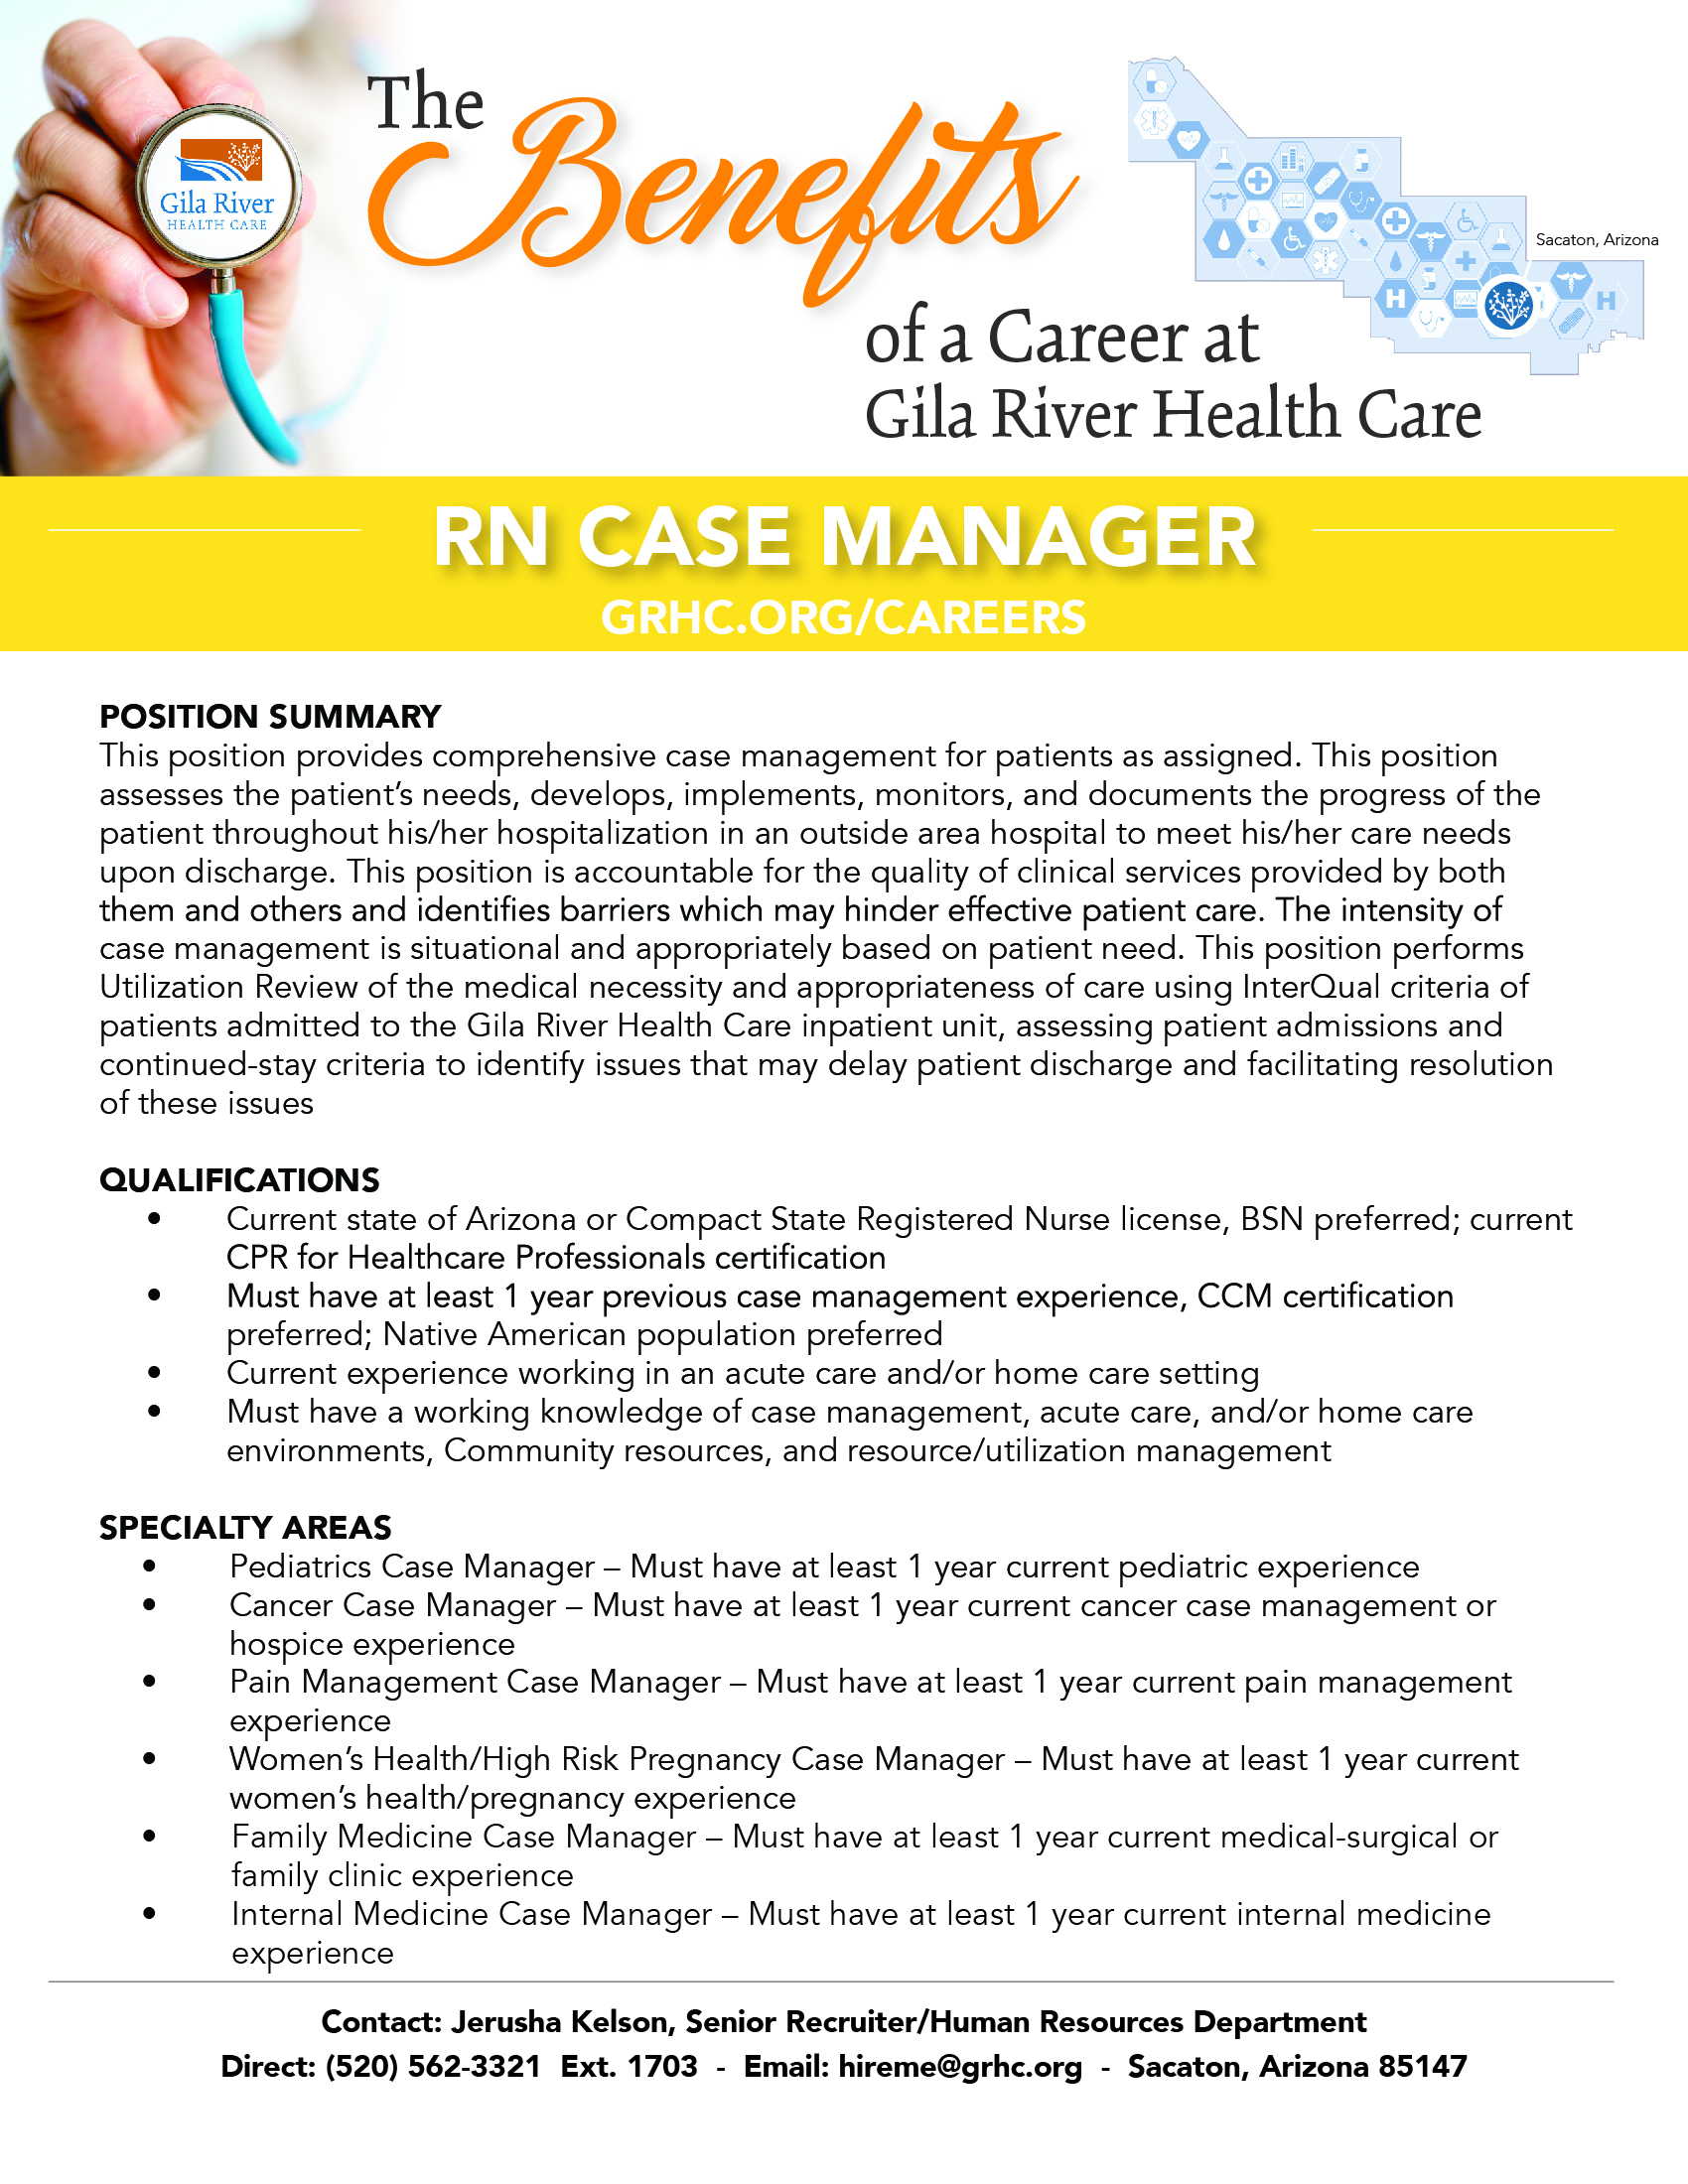 Rn case manager gila river health care rn case manager 1betcityfo Images